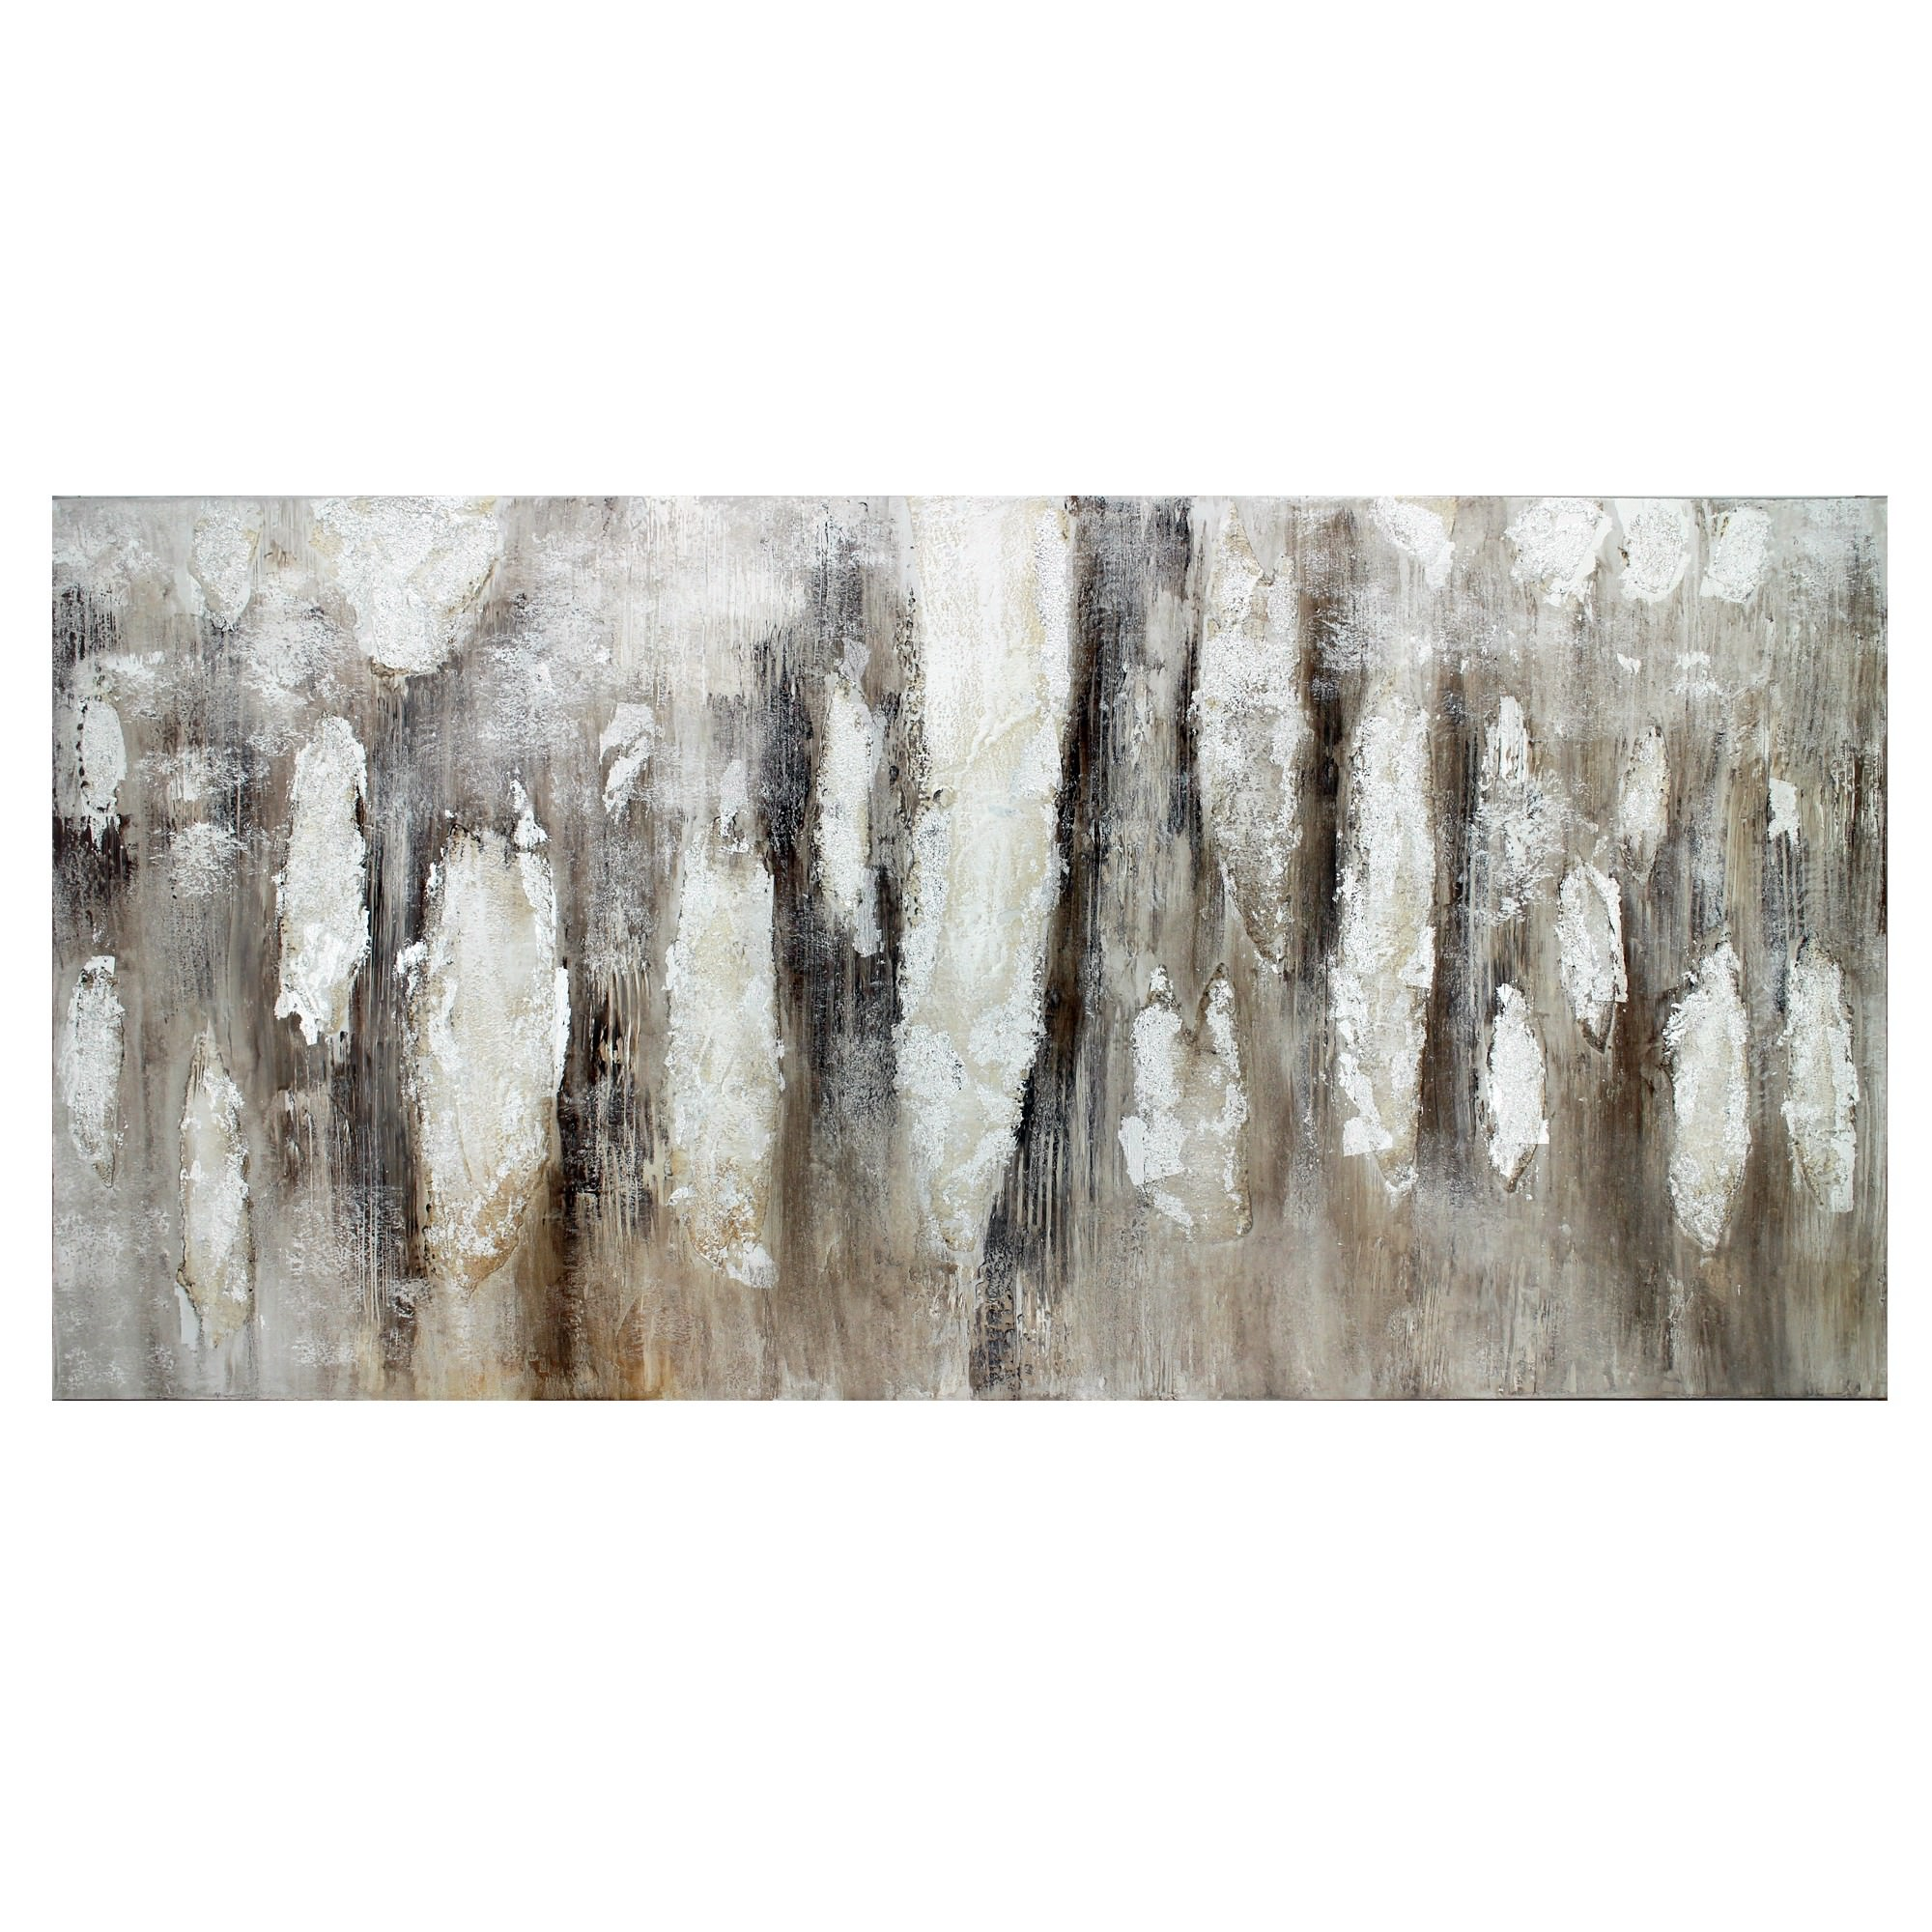 Silver Woodland Stretched Hand Painted Abstract Canvas Wall Art, 120cm